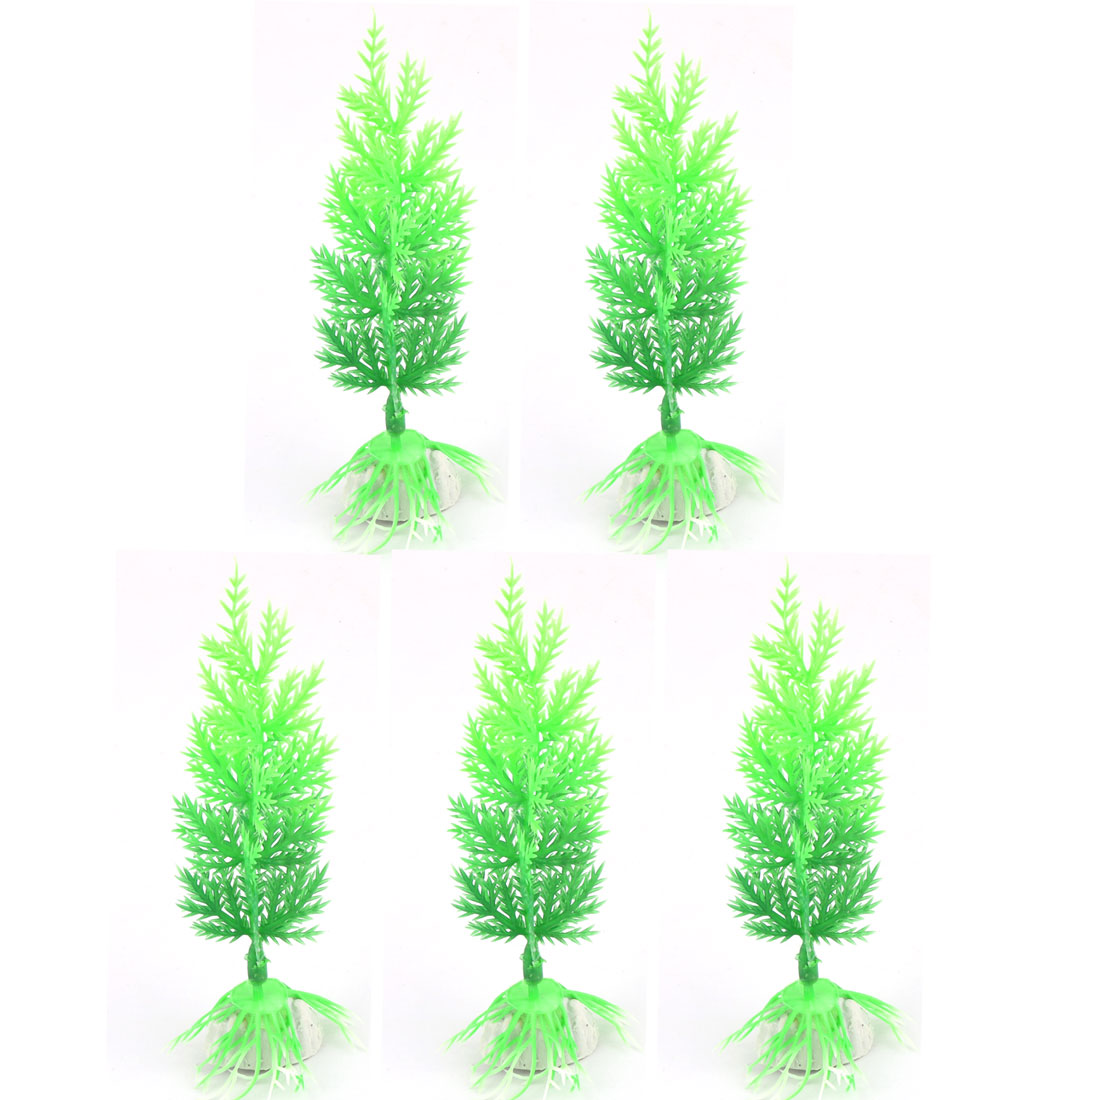 5 Pcs Artificial Green Plastic Tree for Aquarium Fish Tank Decor